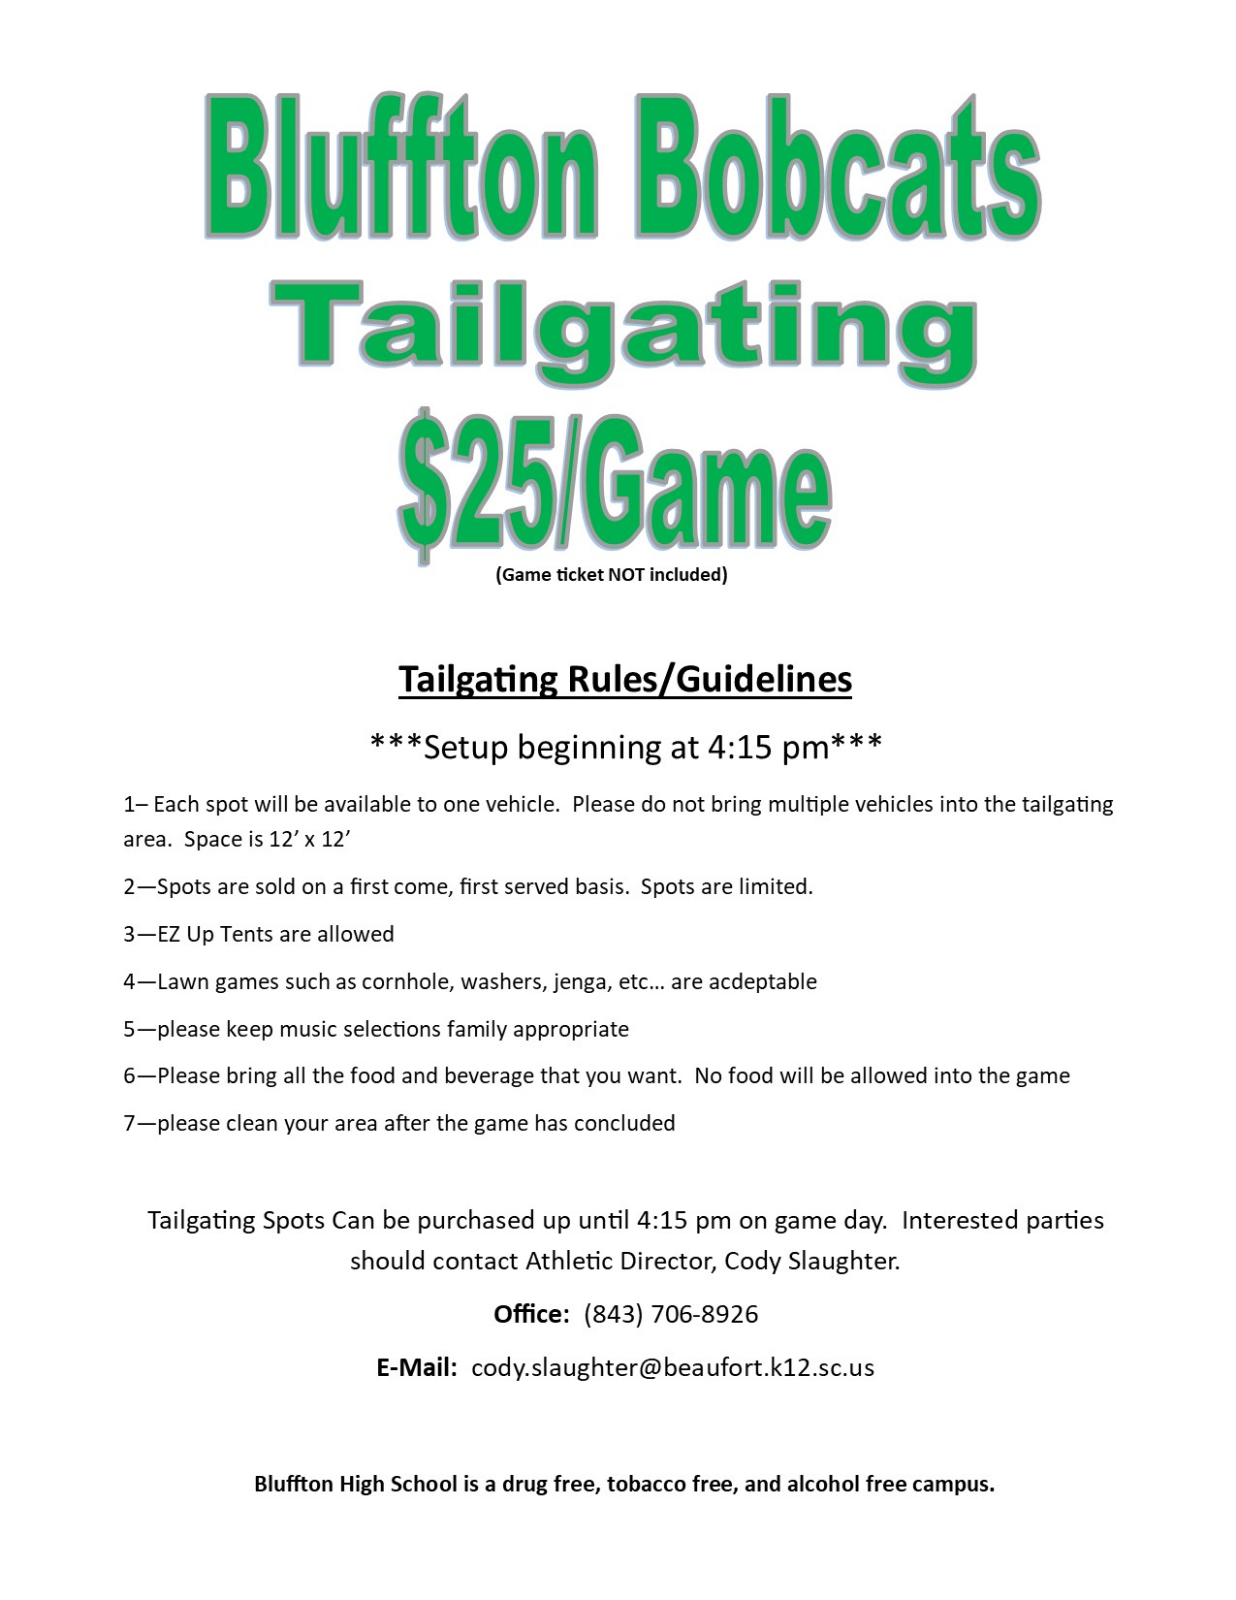 Tailgating available for Hanahan and future games